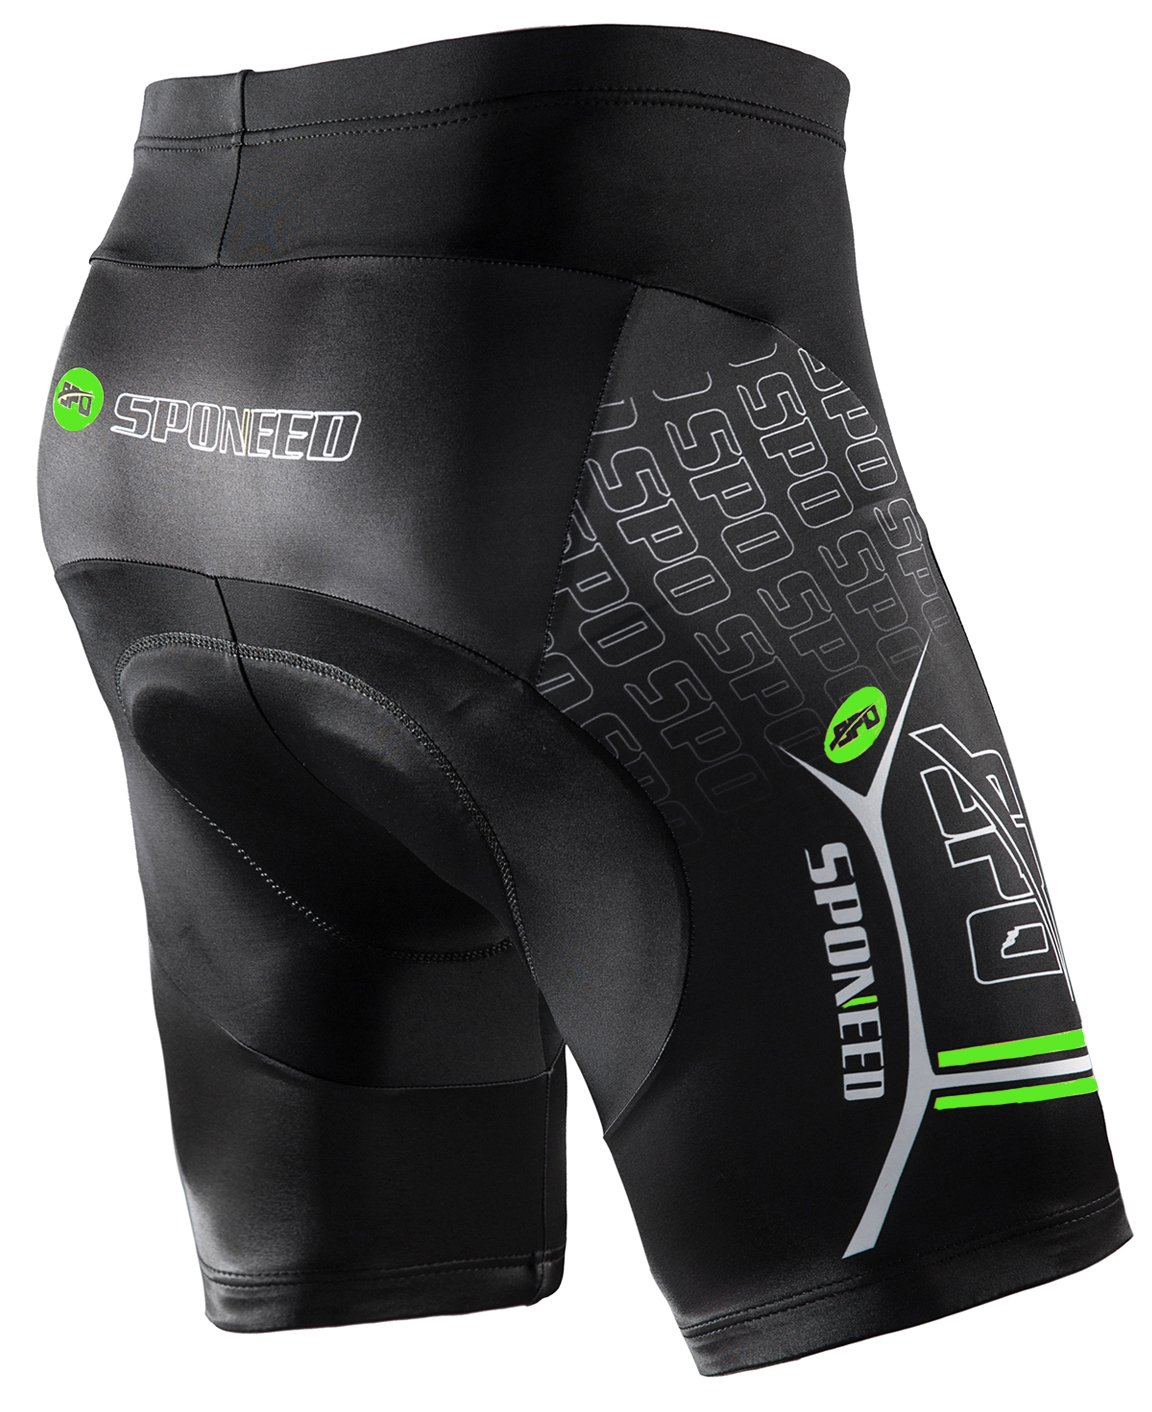 ab0be39440e0f Amazon.com : sponeed Men's Bike Shorts Gel Padded Bottoms Cycling Pants  Tights Bicycle Clothes Biking Gear : Clothing